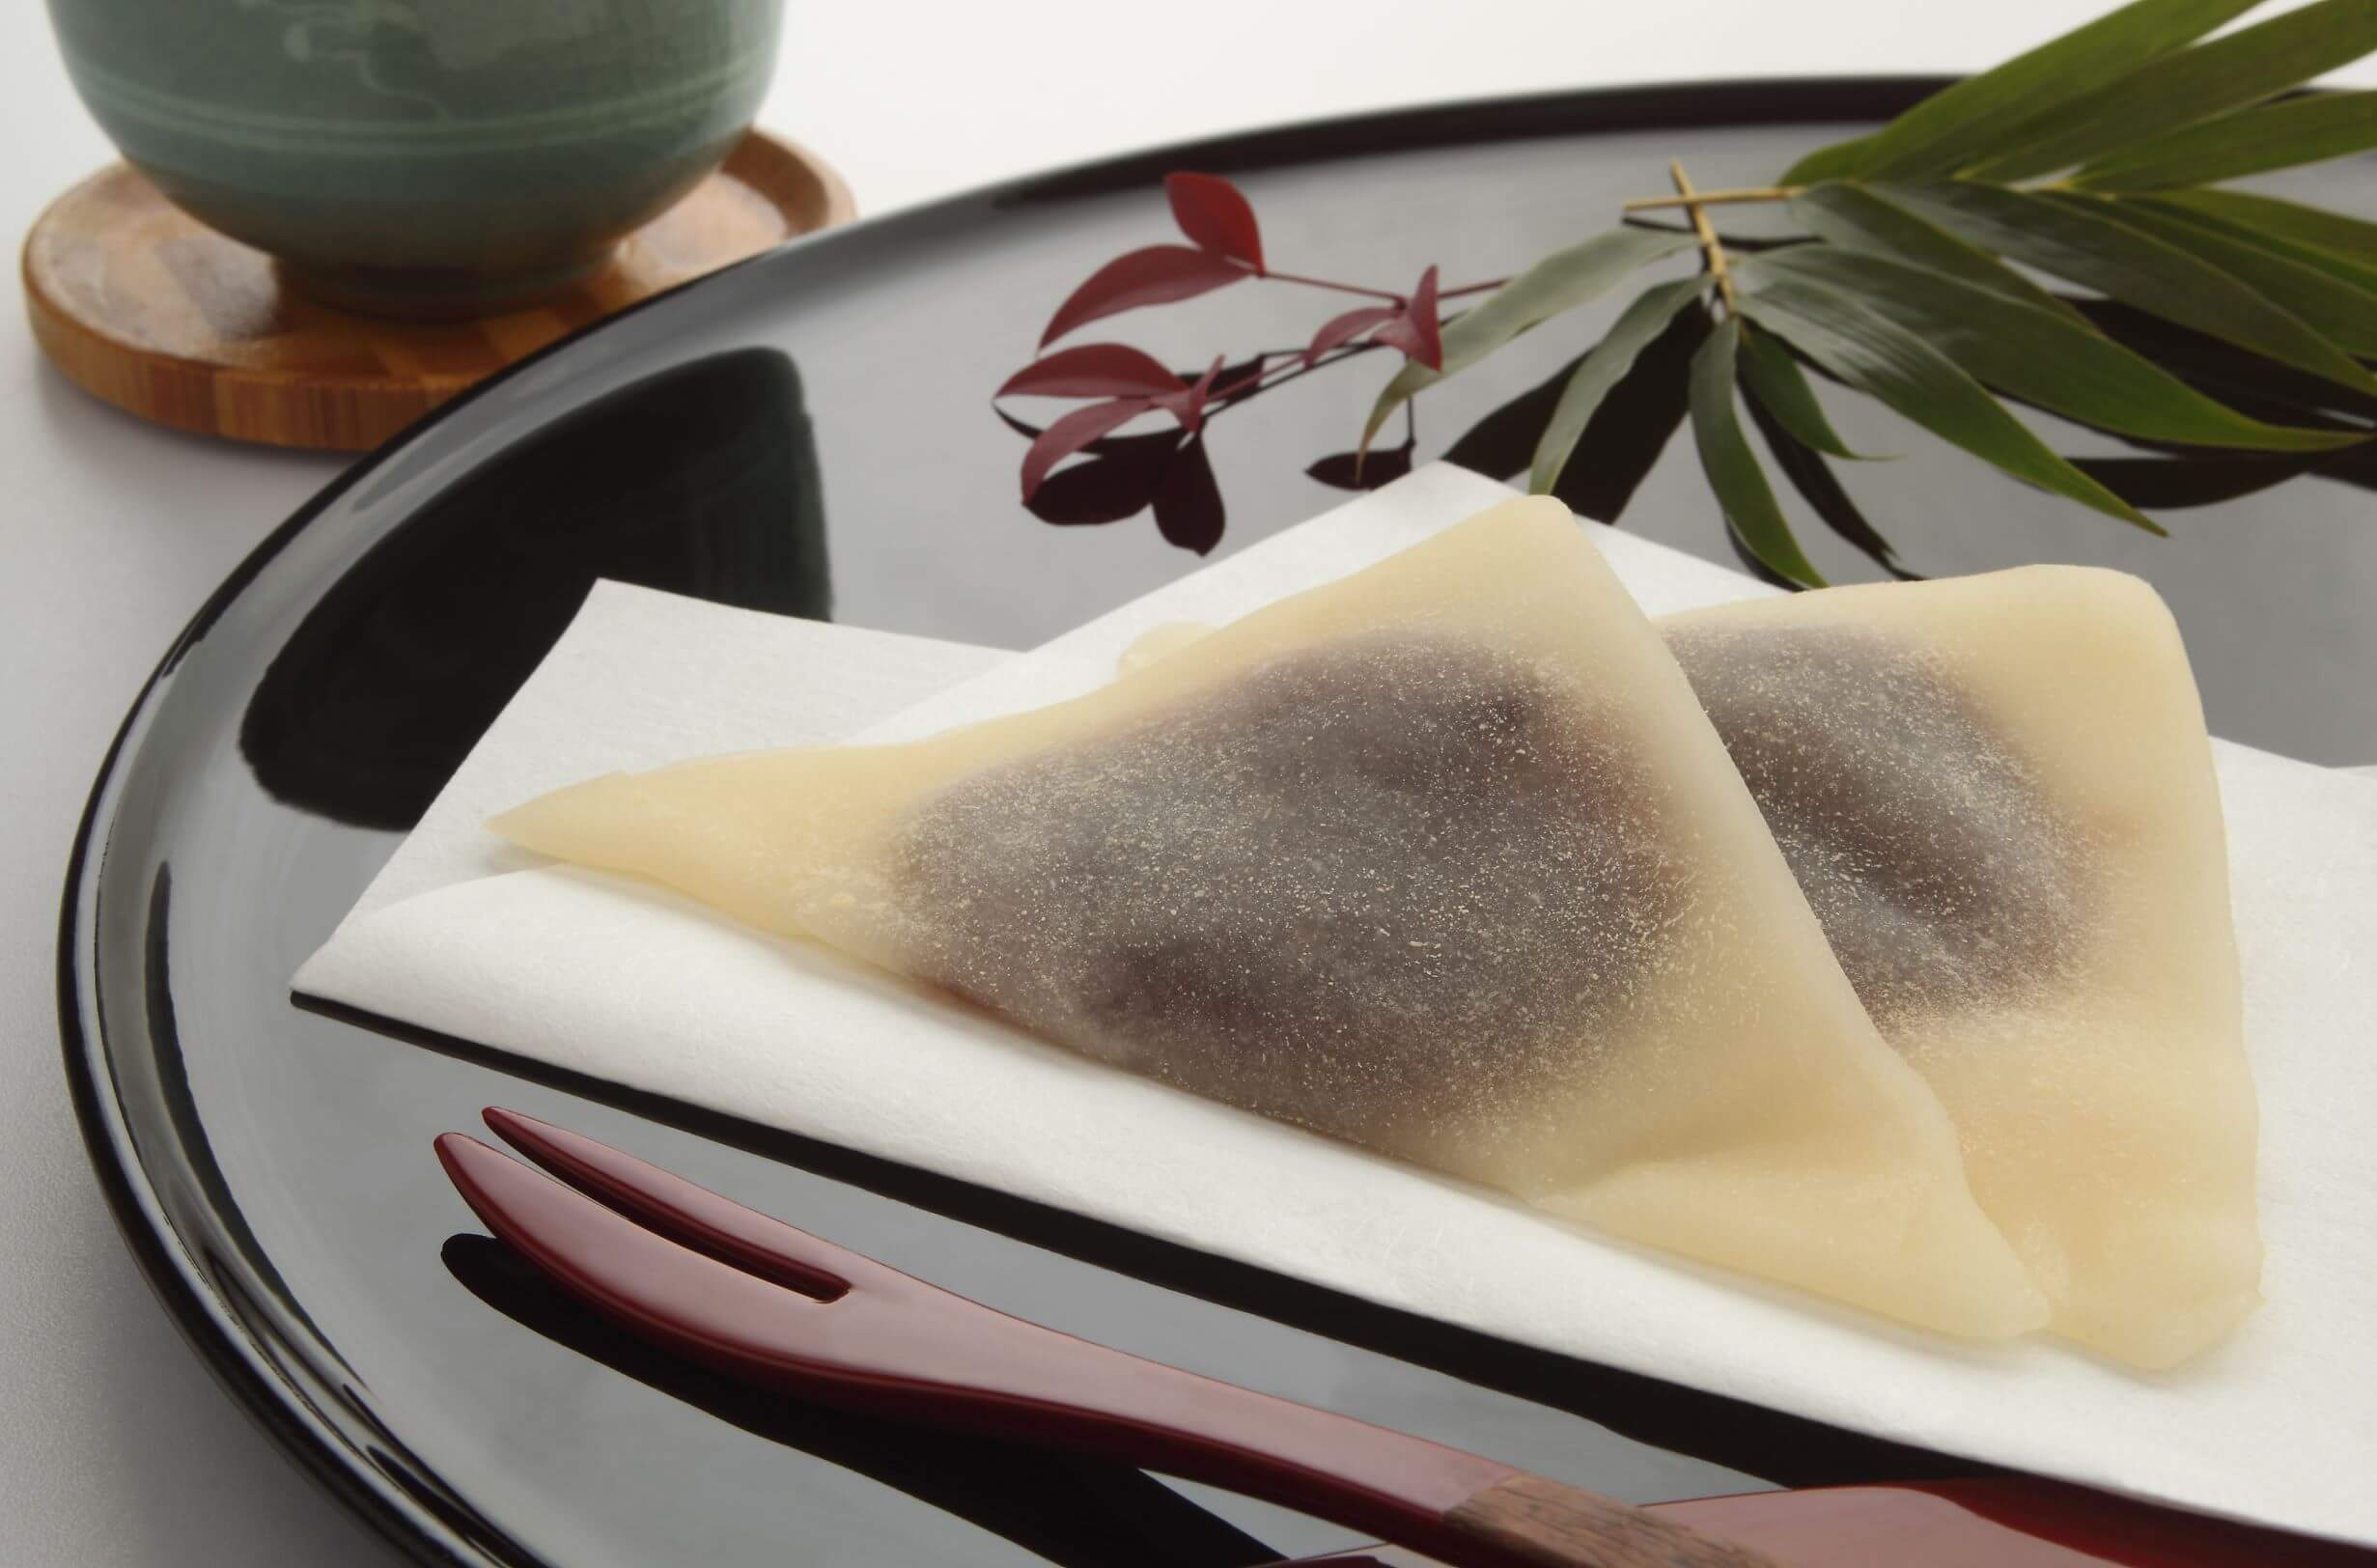 Yatsuhashi, thin mochi folded in half and filled with red bean paste